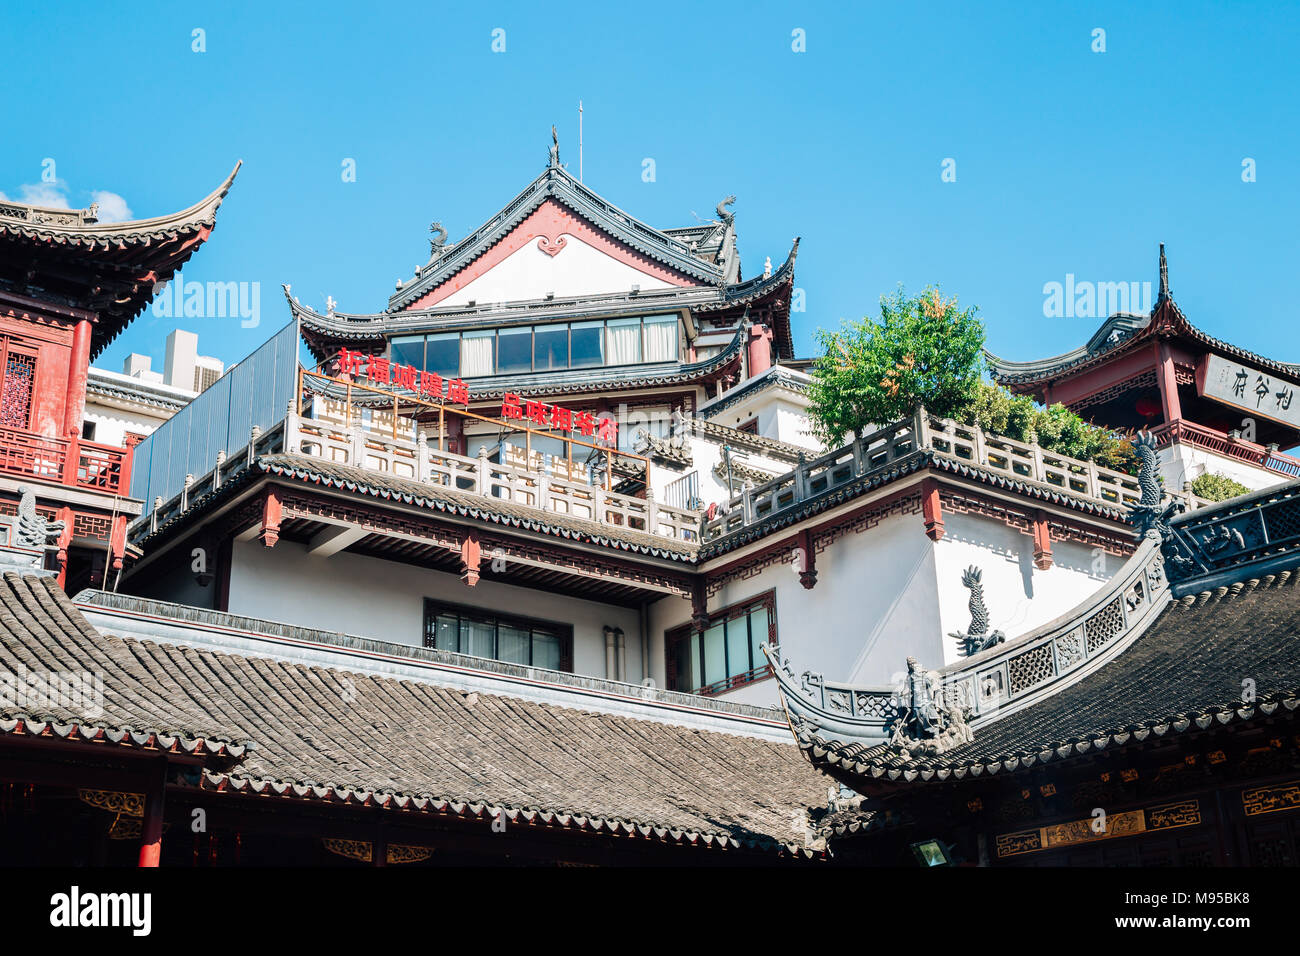 Shanghai, China - August 7, 2016 : City God Temple Chenghuang Miao - Stock Image